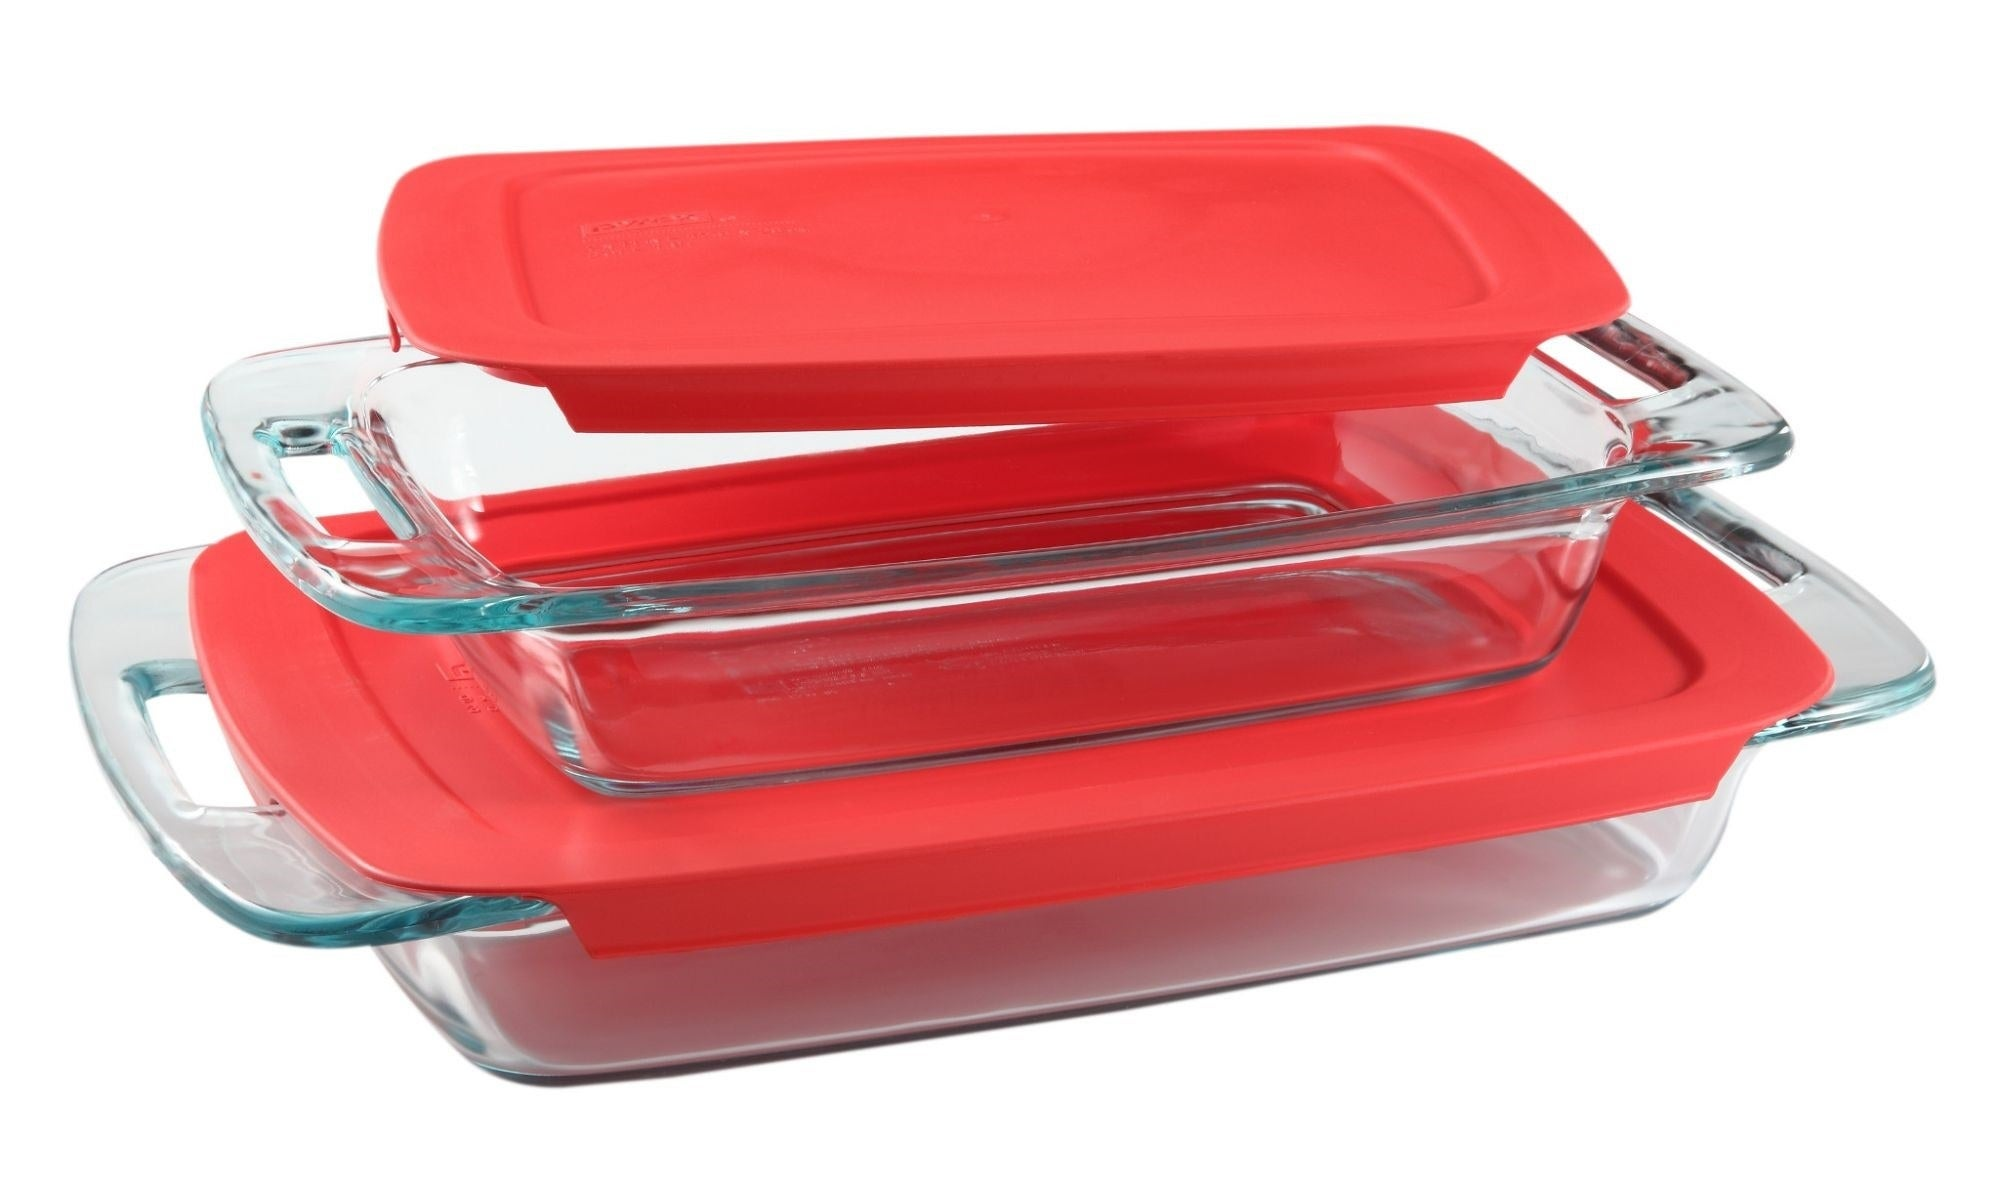 Two glass Pyrex dishes with red lids stacked on top of each other